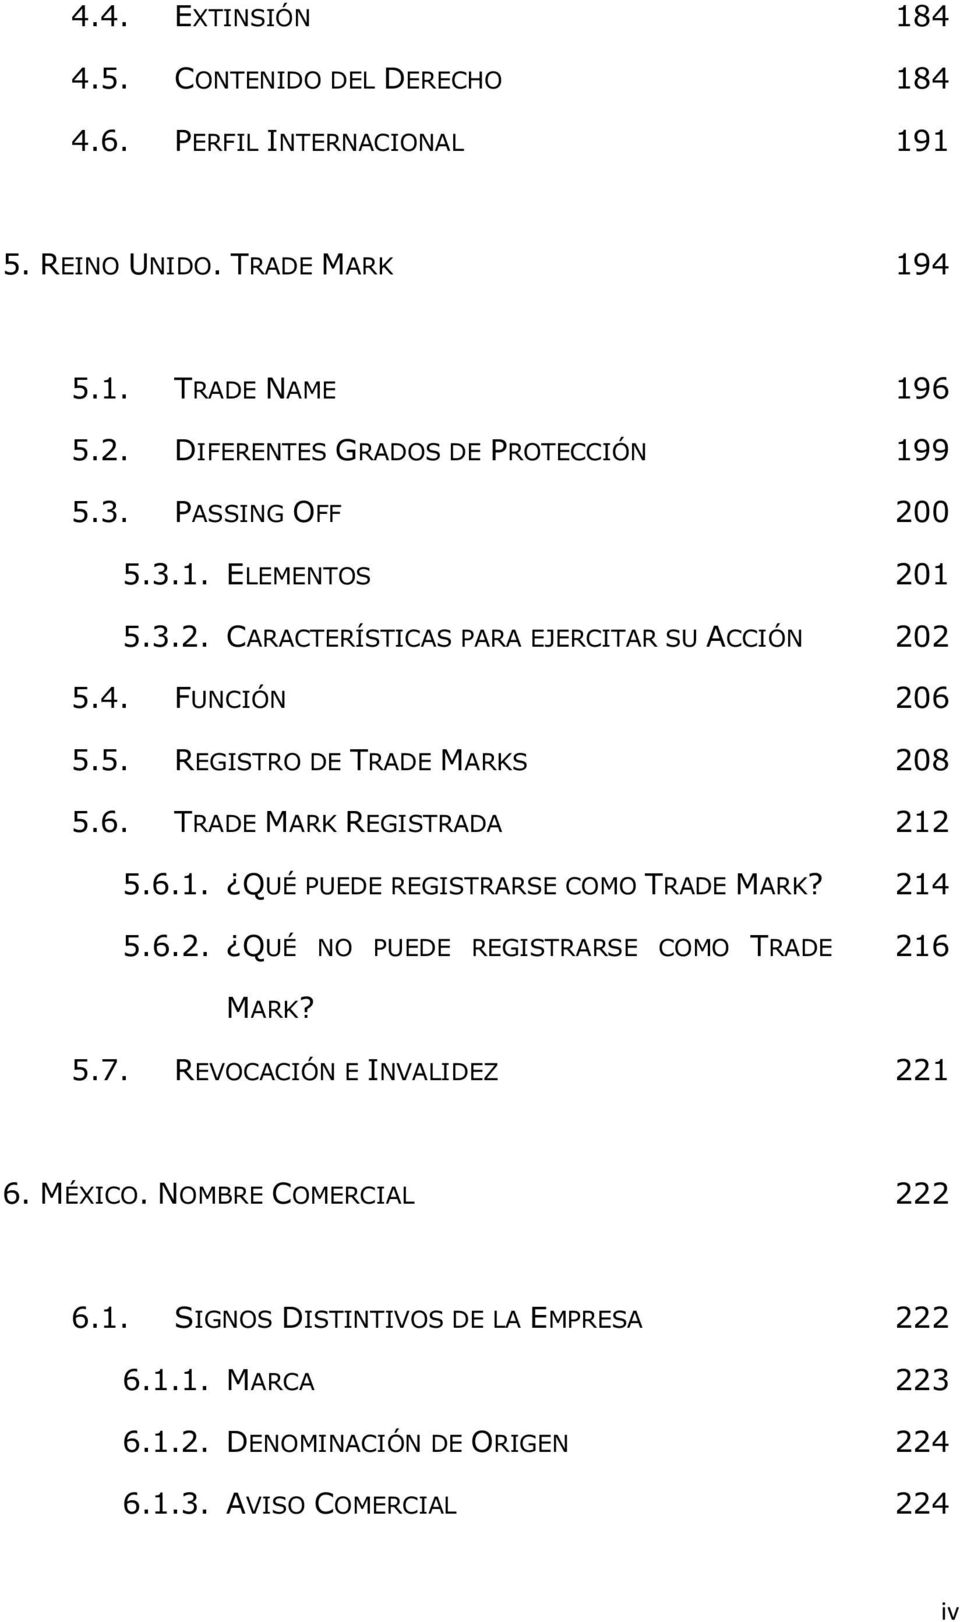 6. TRADE MARK REGISTRADA 5.6.1. QUÉ PUEDE REGISTRARSE COMO TRADE MARK? 5.6.2. QUÉ NO PUEDE REGISTRARSE COMO TRADE 196 199 200 201 202 206 208 212 214 216 MARK?